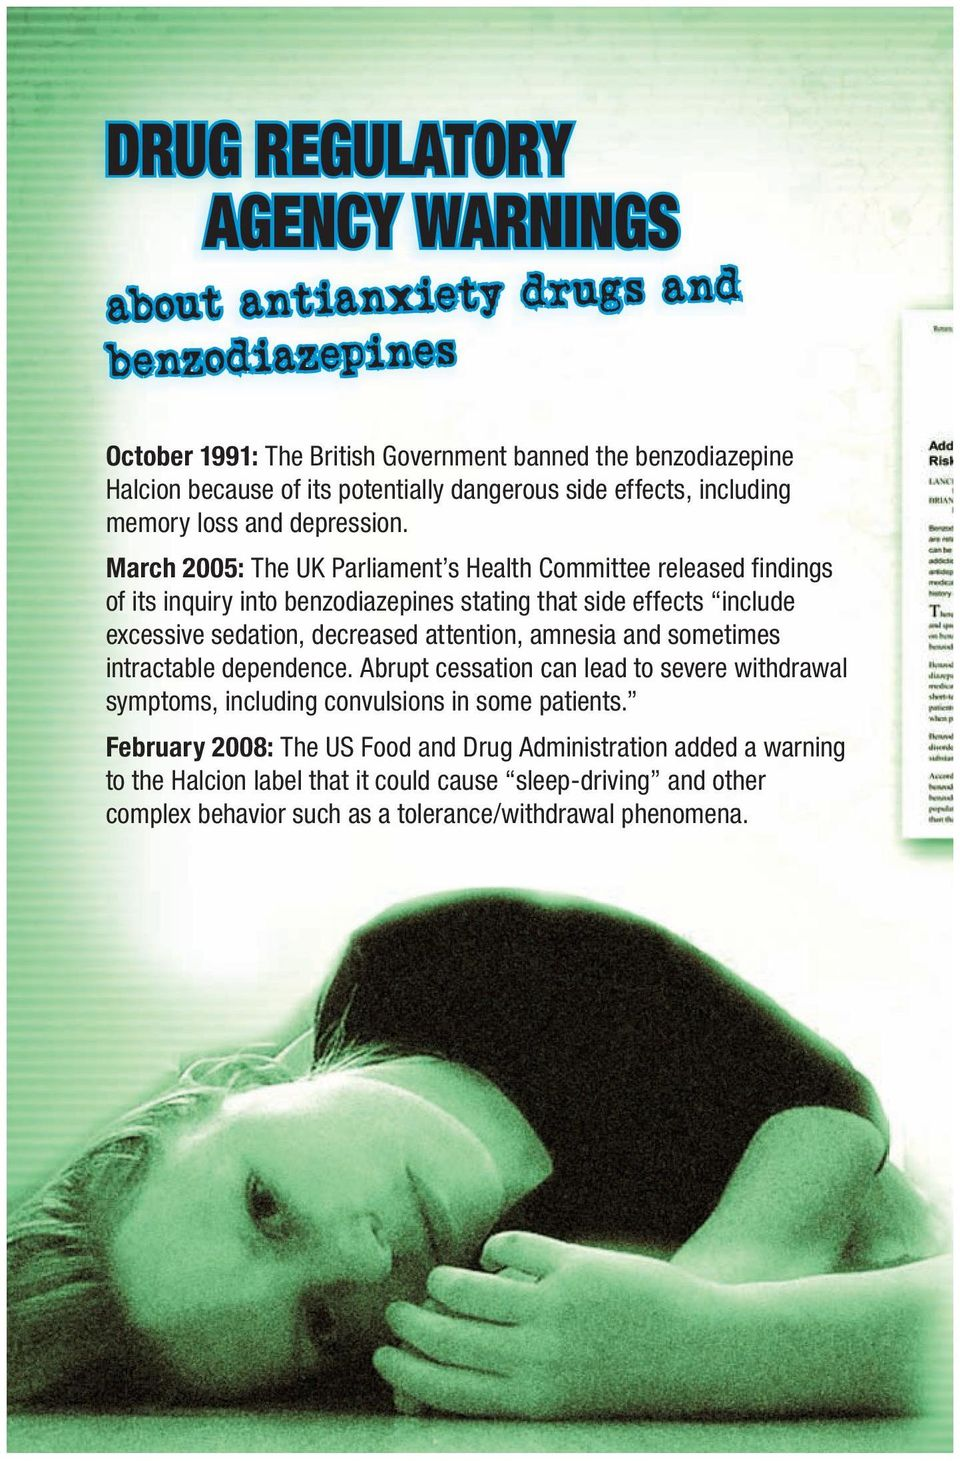 March 2005: The UK Parliament s Health Committee released findings of its inquiry into benzodiazepines stating that side effects include excessive sedation, decreased attention, amnesia